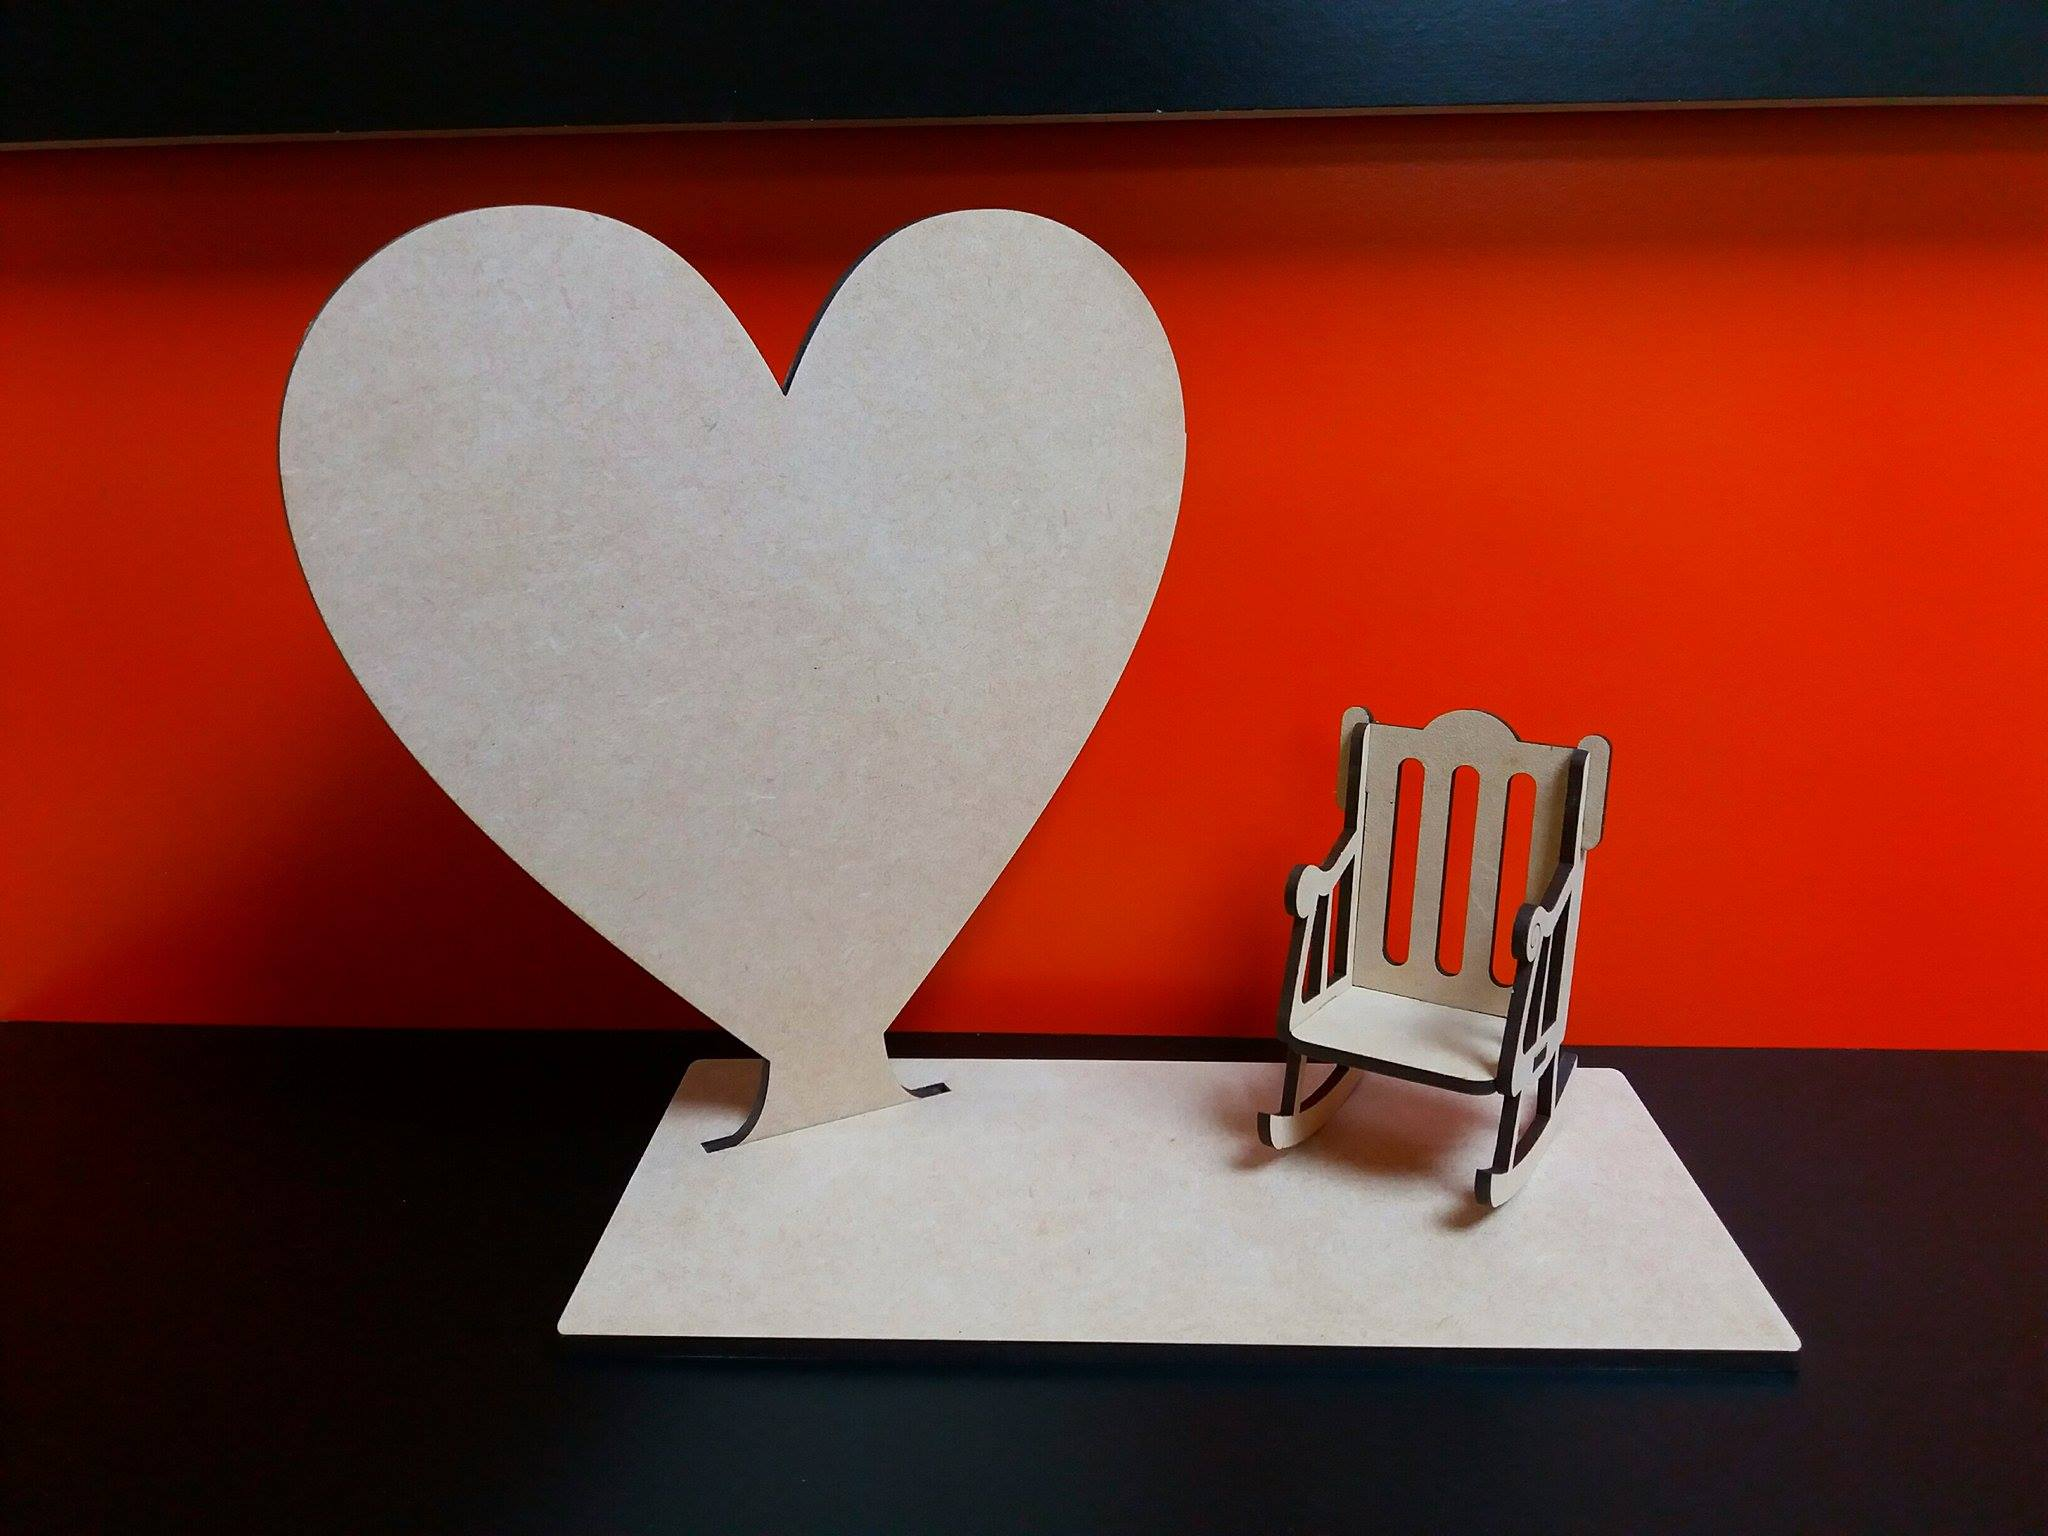 rocking heart craft with stand and rocking chair 20cm x 18cm woodform 2848